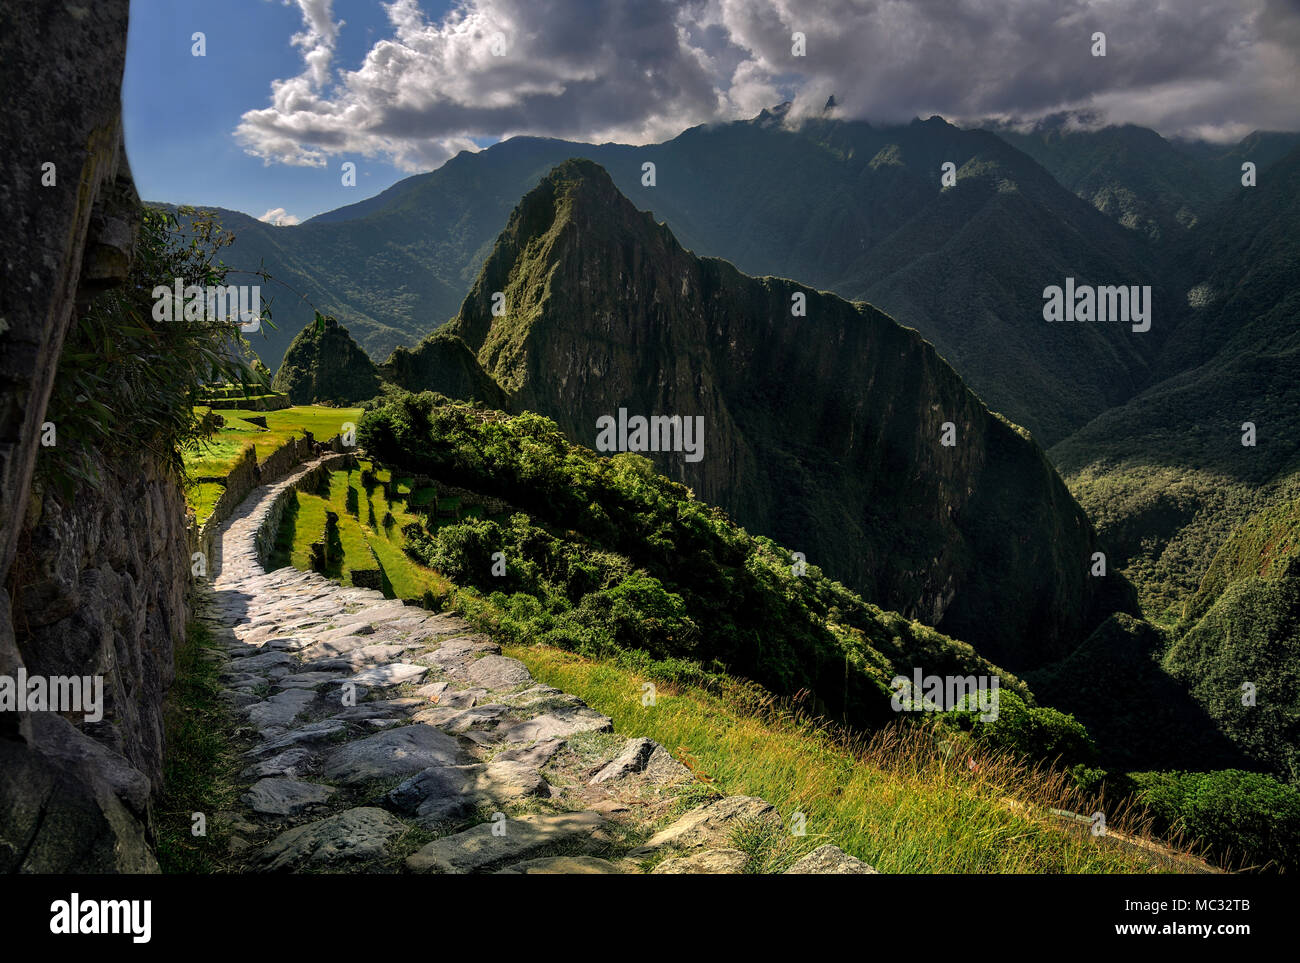 Machu Picchu Peru - View on a mountain peak - Stock Image